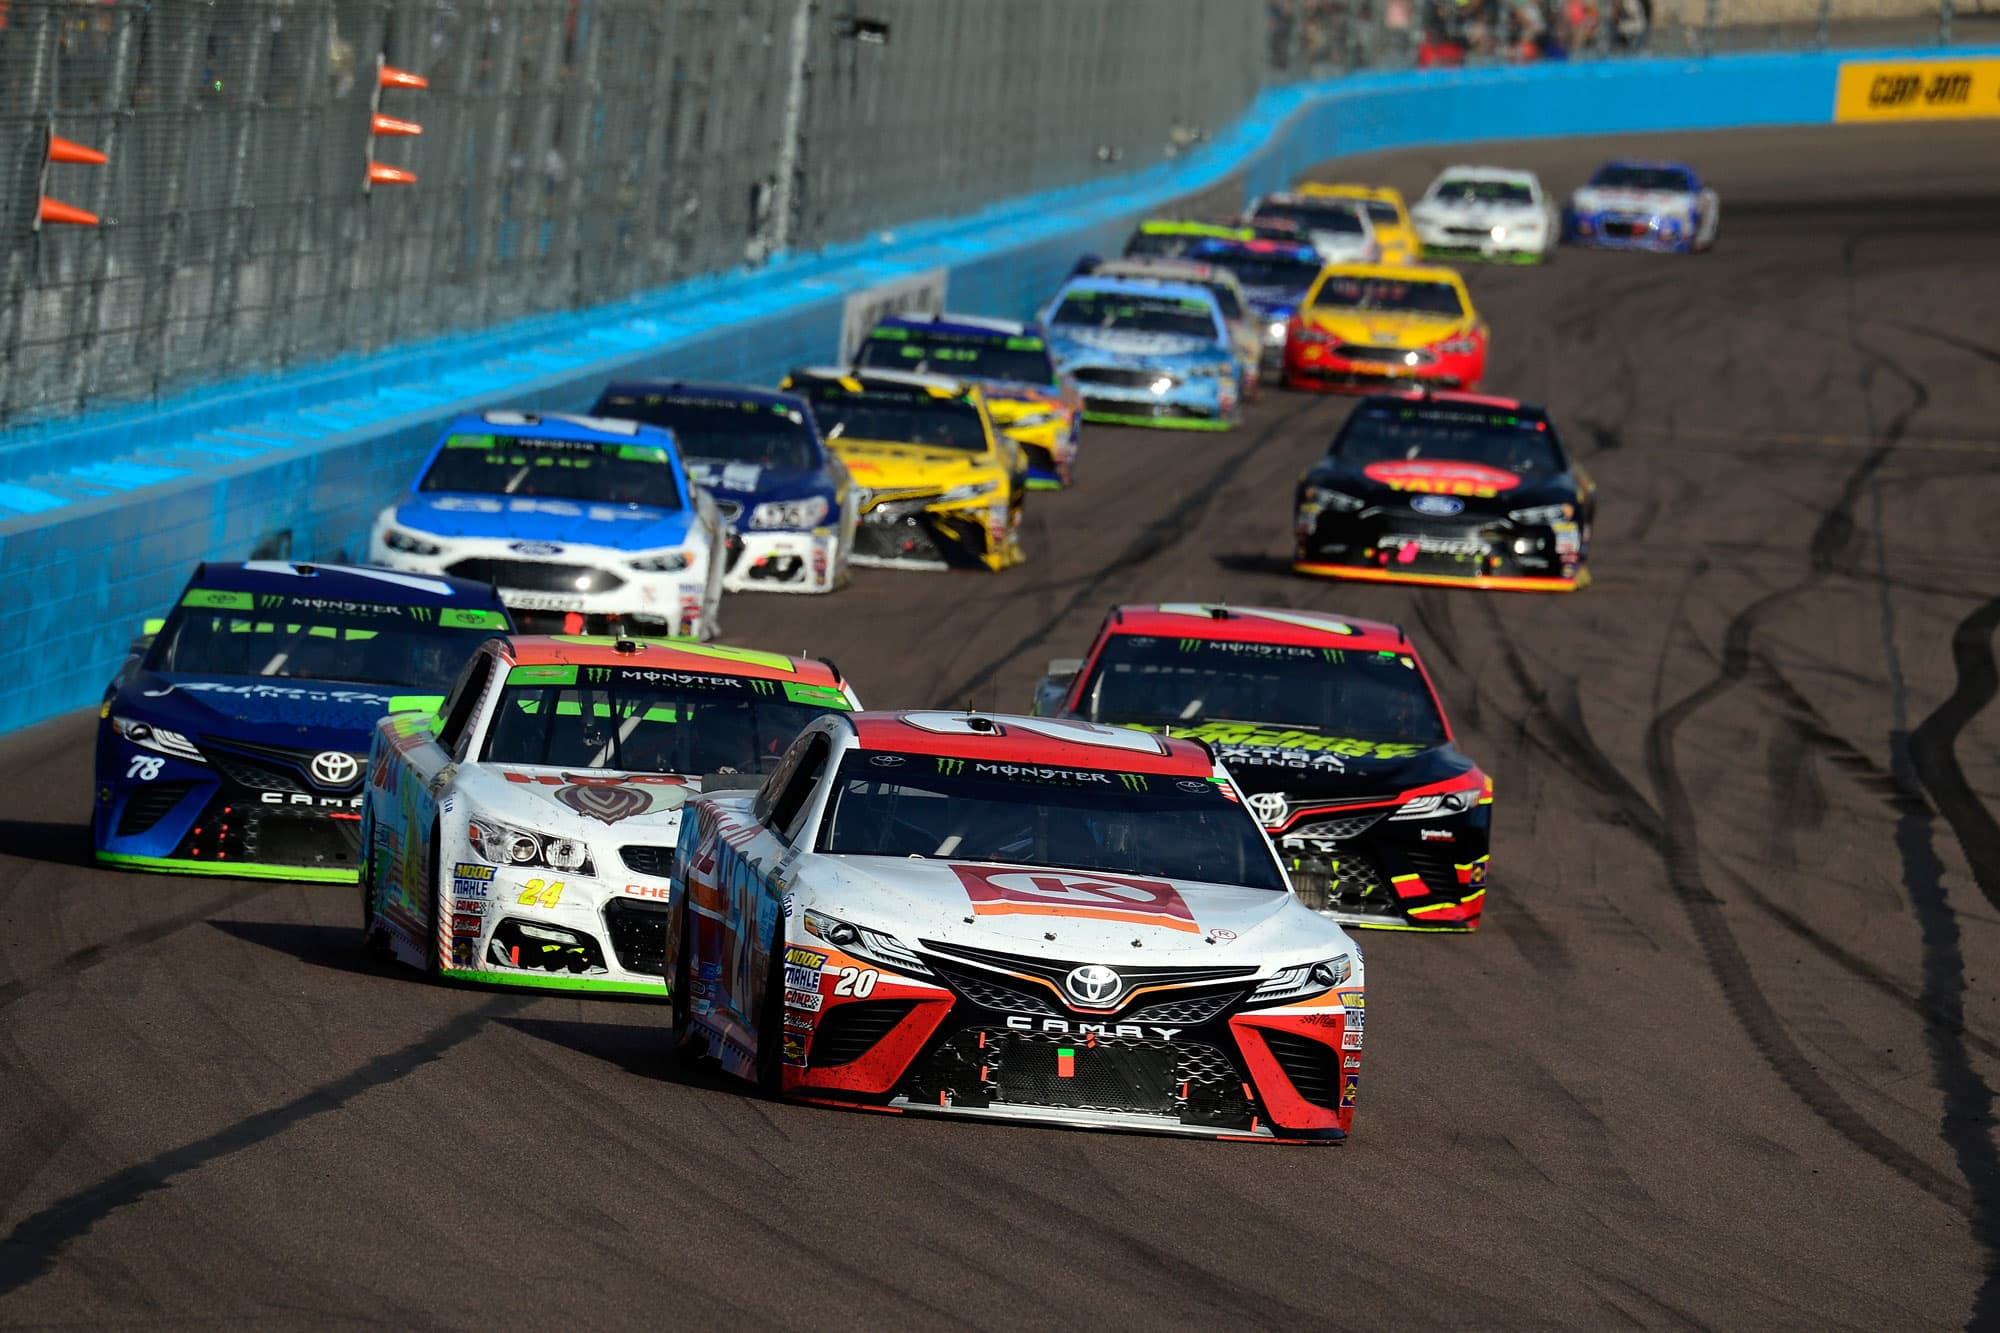 Nascar Drivers Win Prize Money But They Say It Takes Just As Much To Make The Cars Run